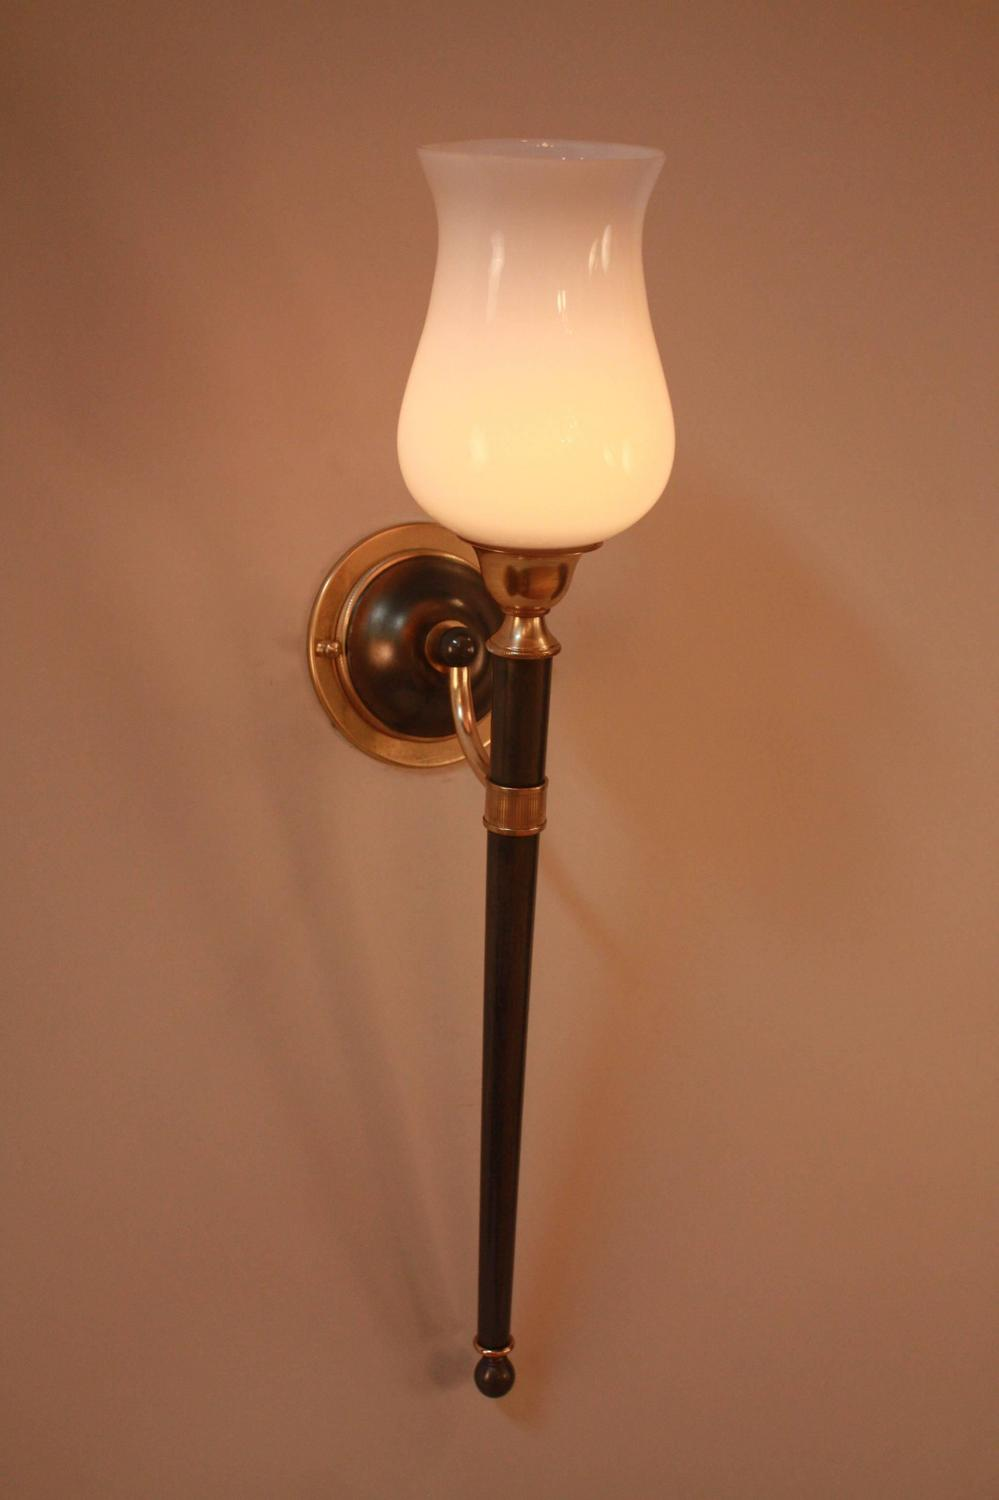 Wall Torchiere Lamps : Pair of Torchiere Wall Sconces by Maison Jansen For Sale at 1stdibs